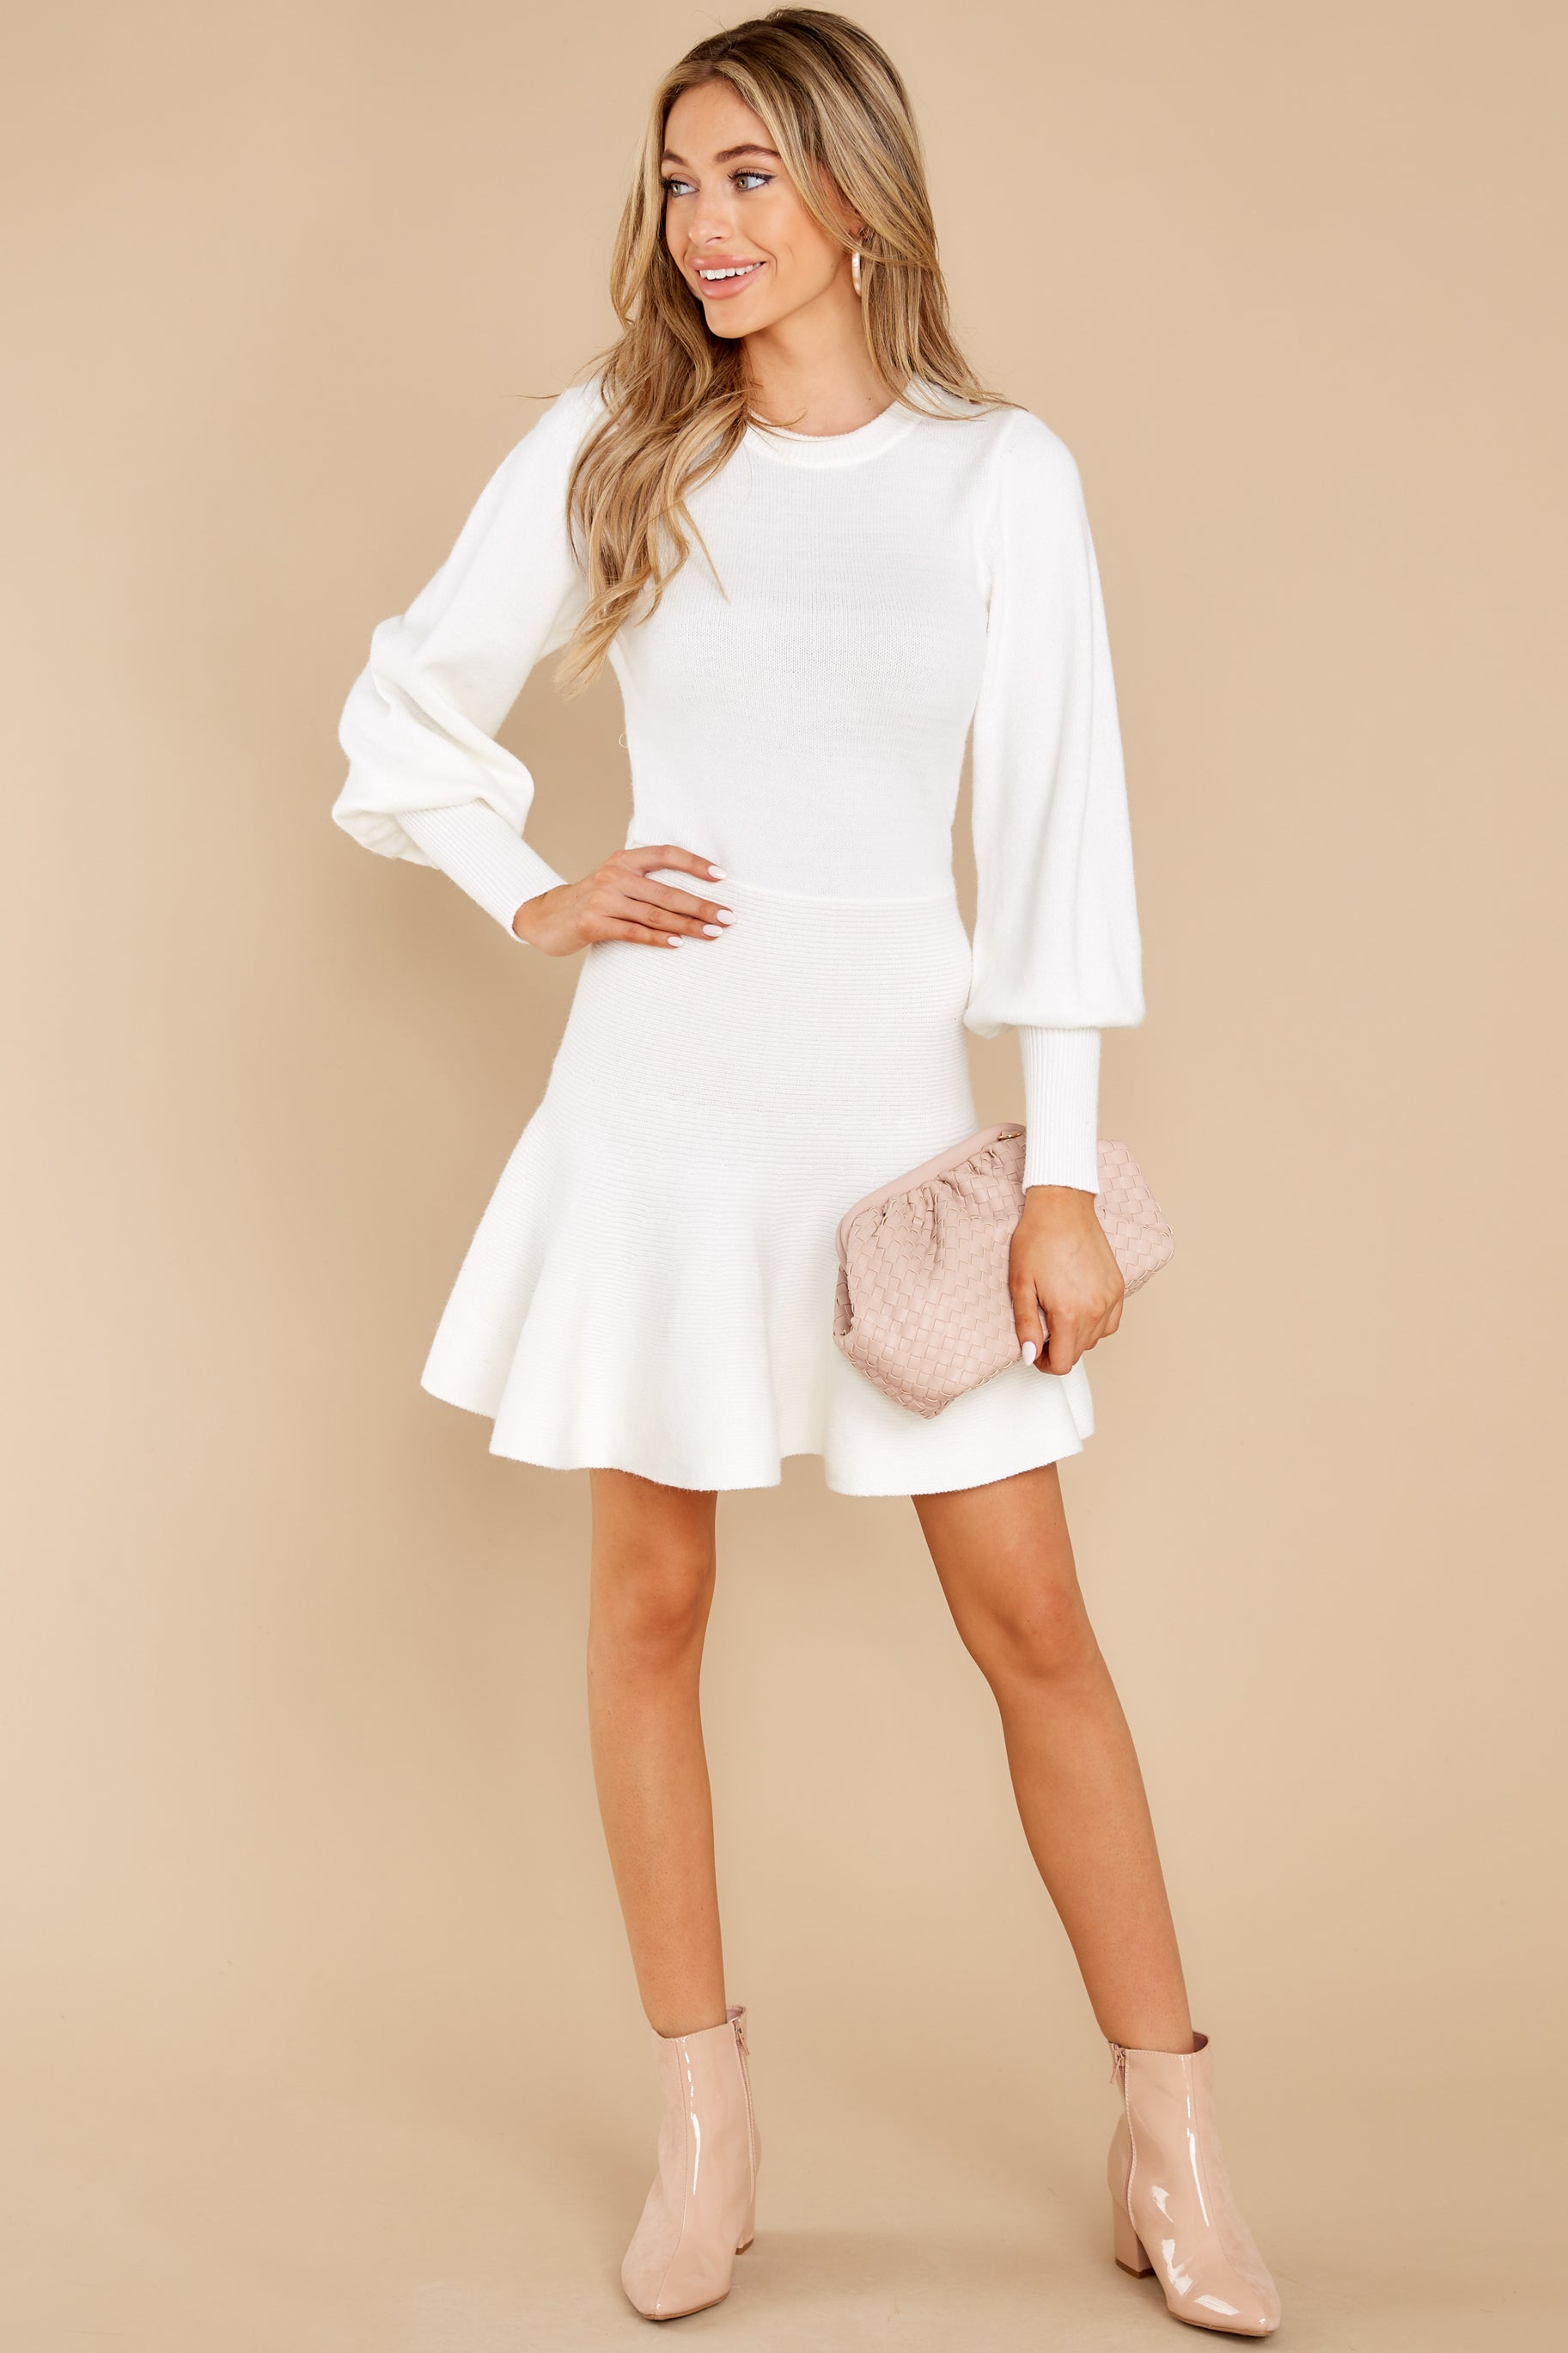 4 Into Me Into You White Sweater Dress at reddress.com